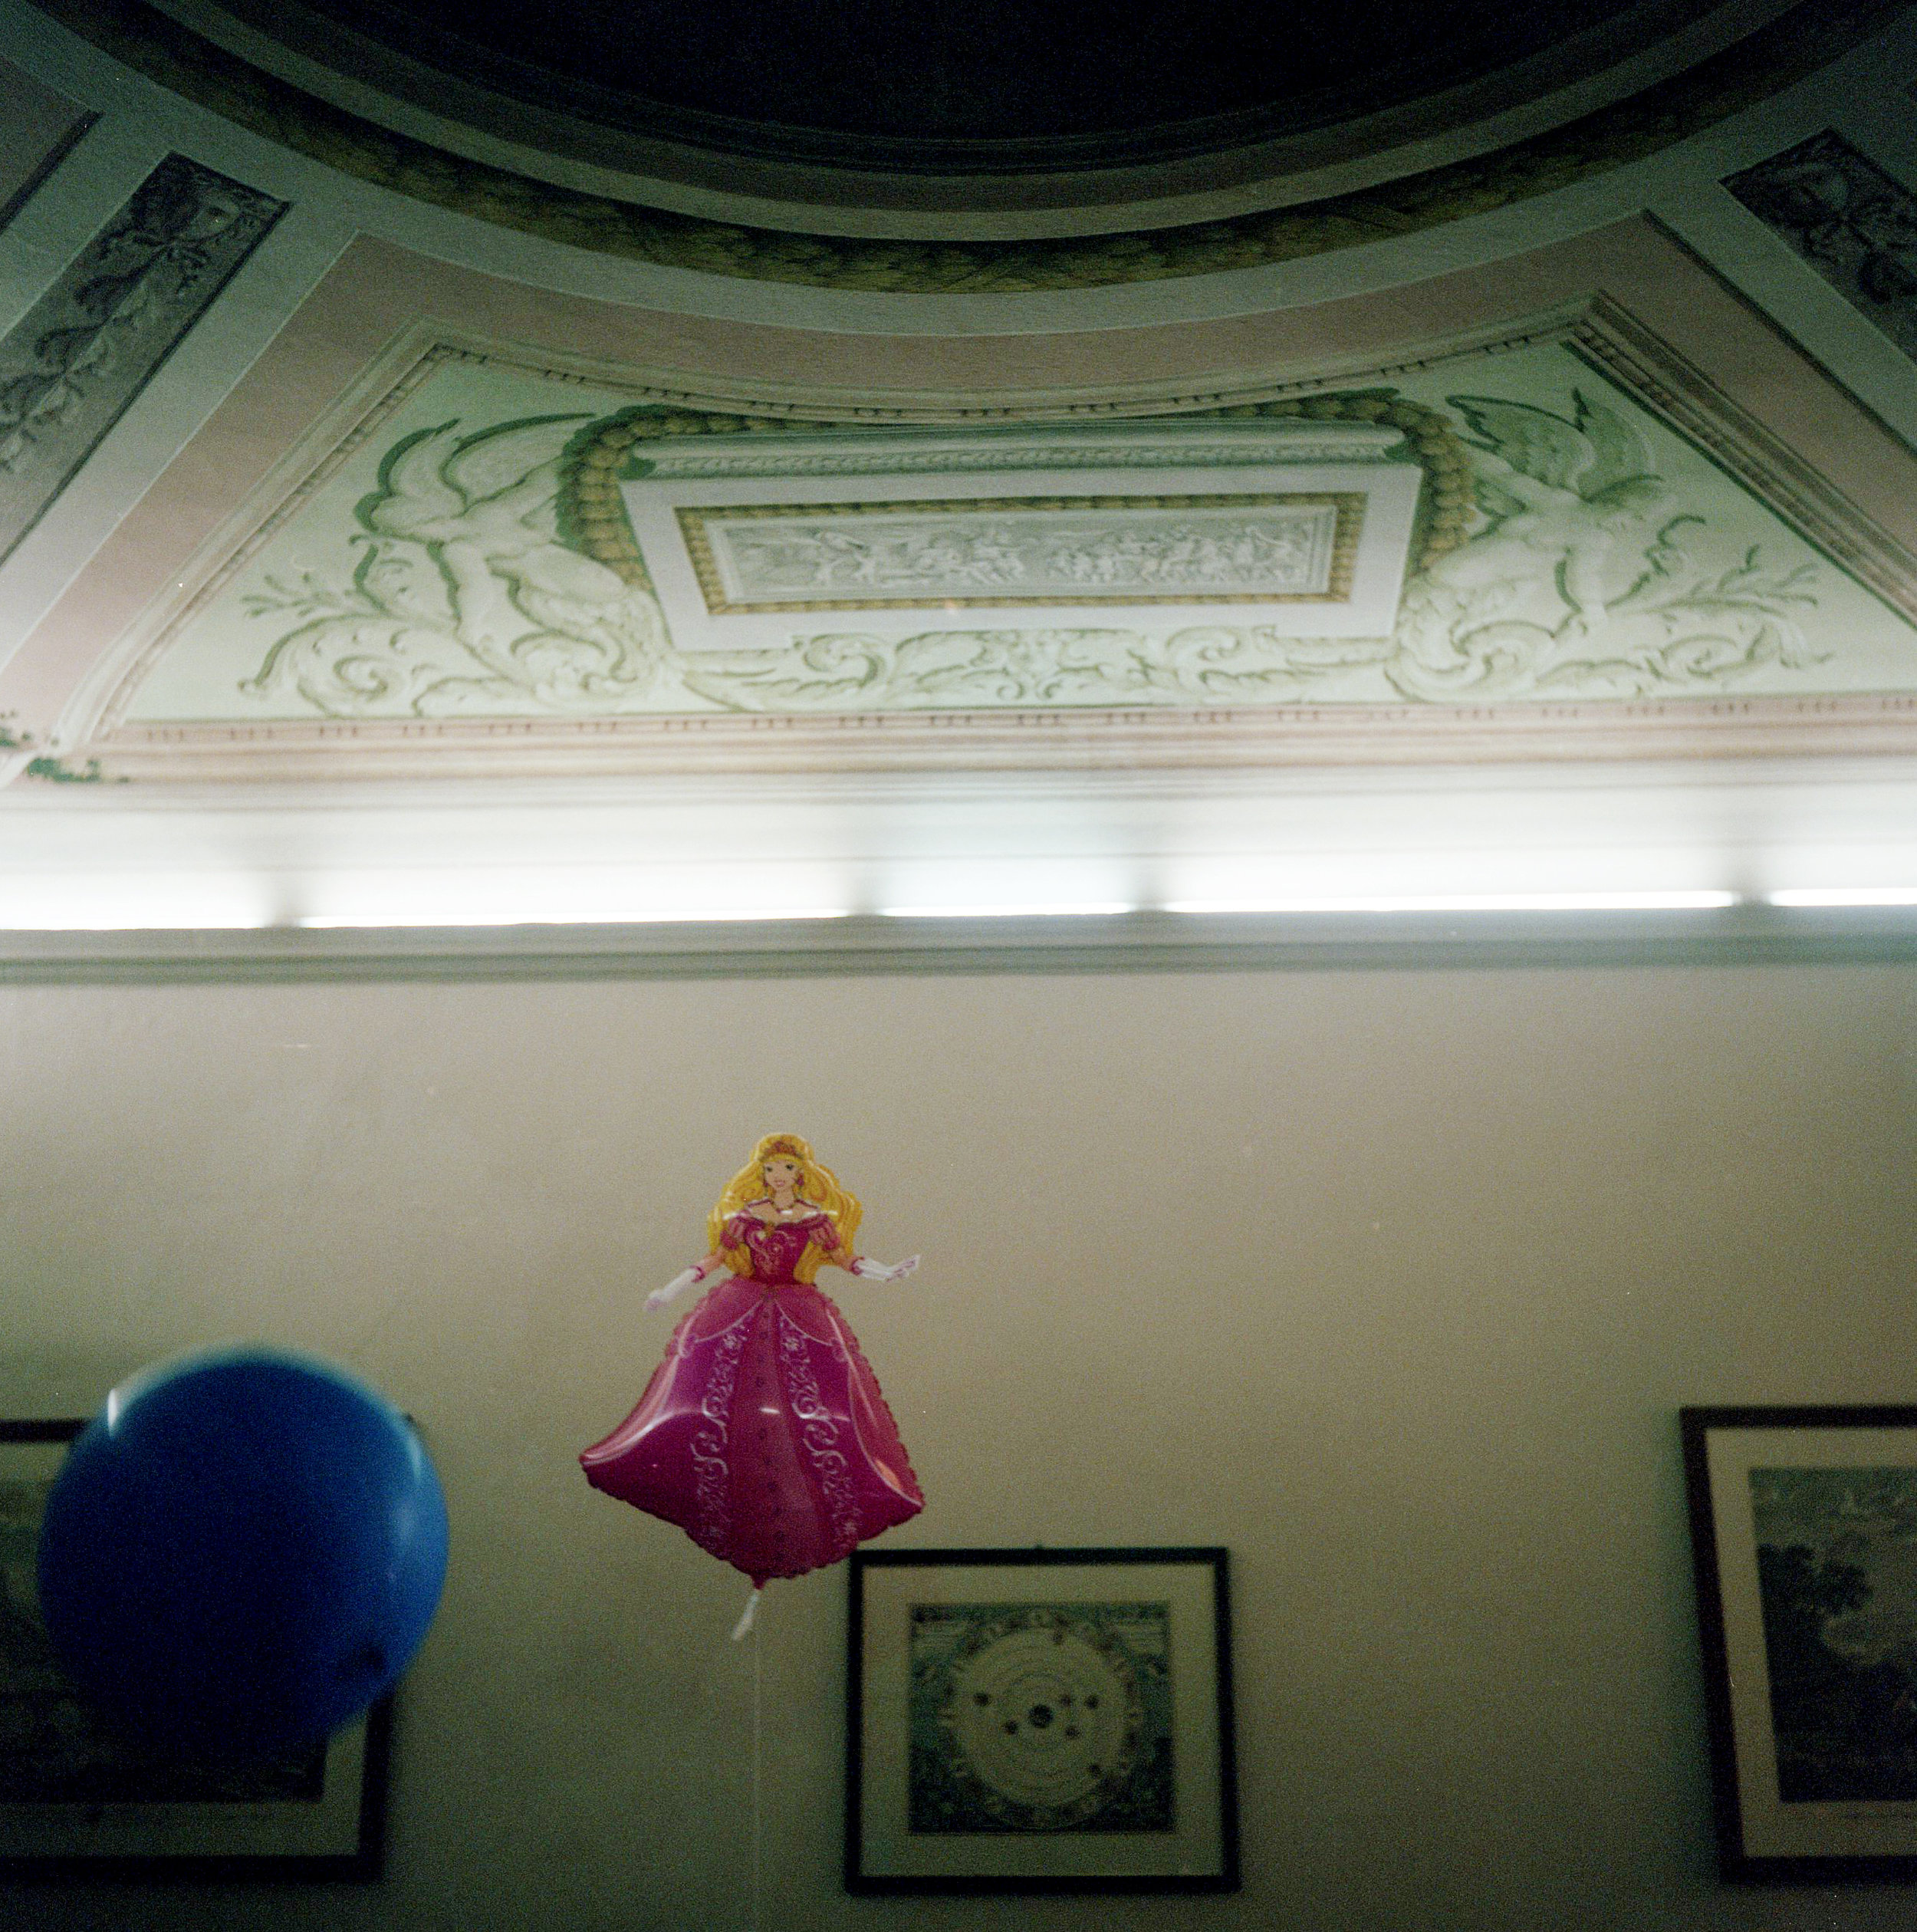 Principessa Balloon with fresco living room ceiling, Cortona, Italy